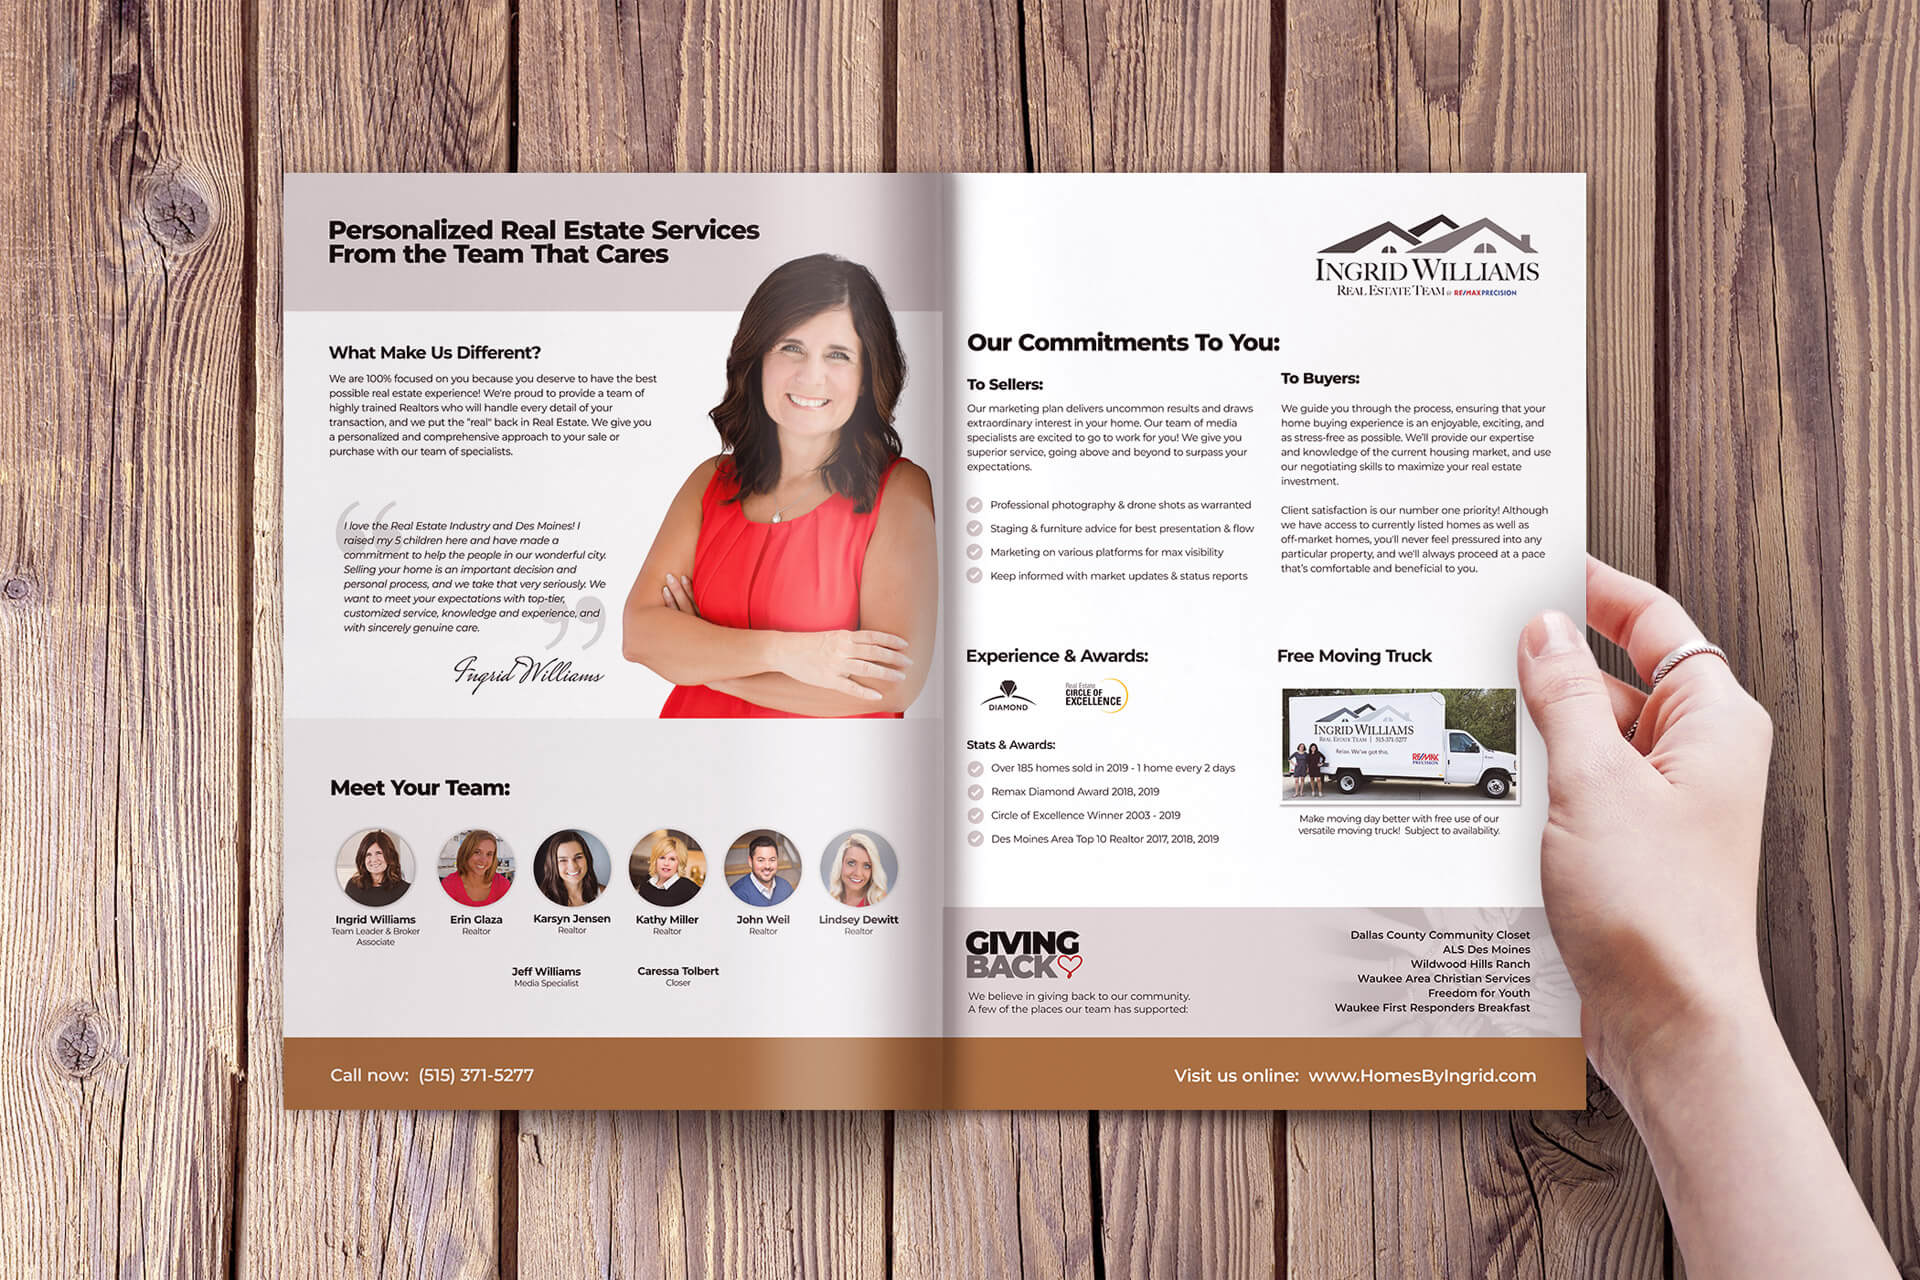 Graphic Design - Real Estate Brochure for Ingrid Williams Real Estate Team